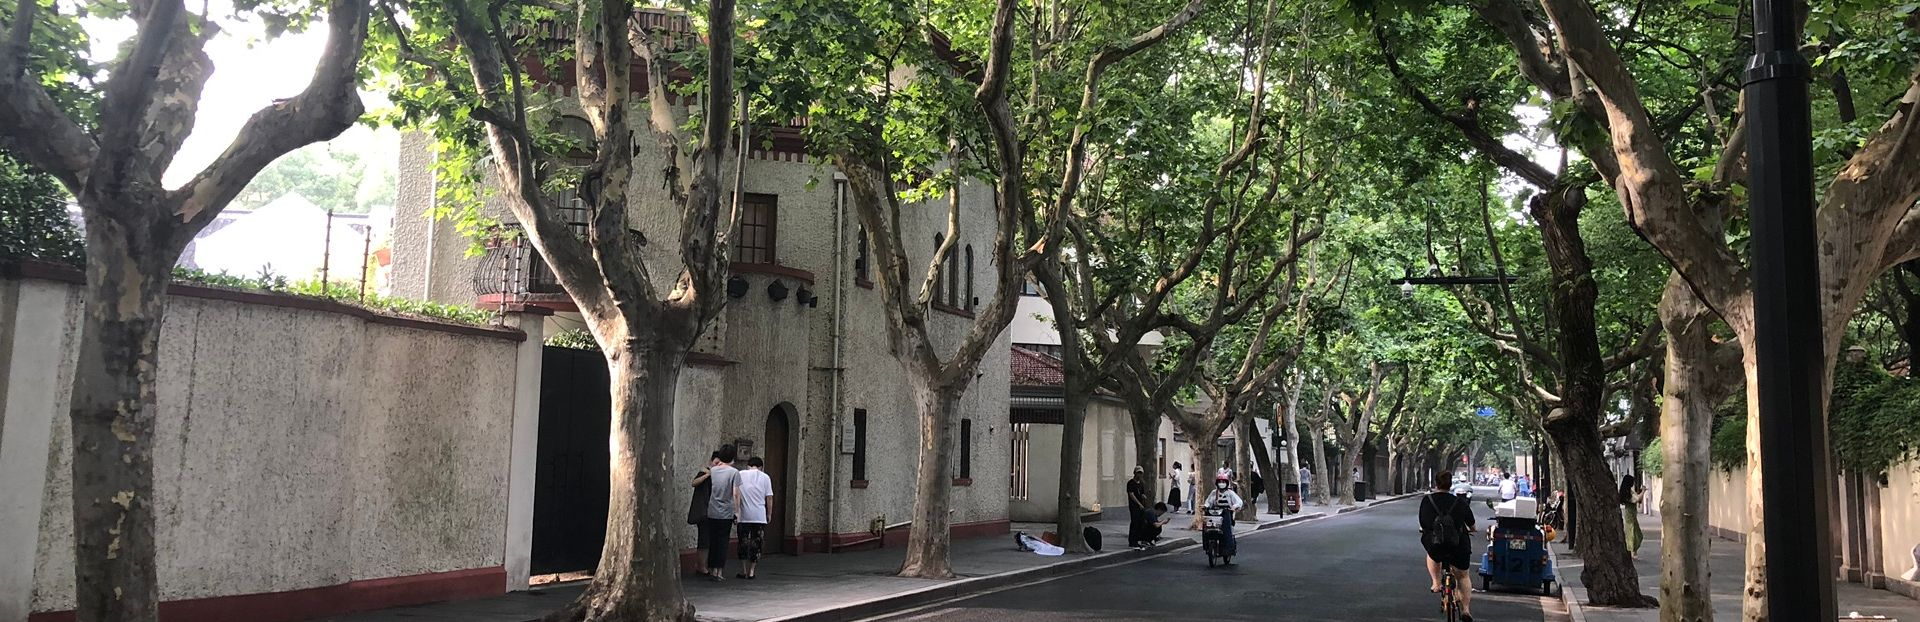 Shanghai audio tour: Gangsters, Secret Gardens and Art Deco Lane Houses: The Hidden History of the French Concession